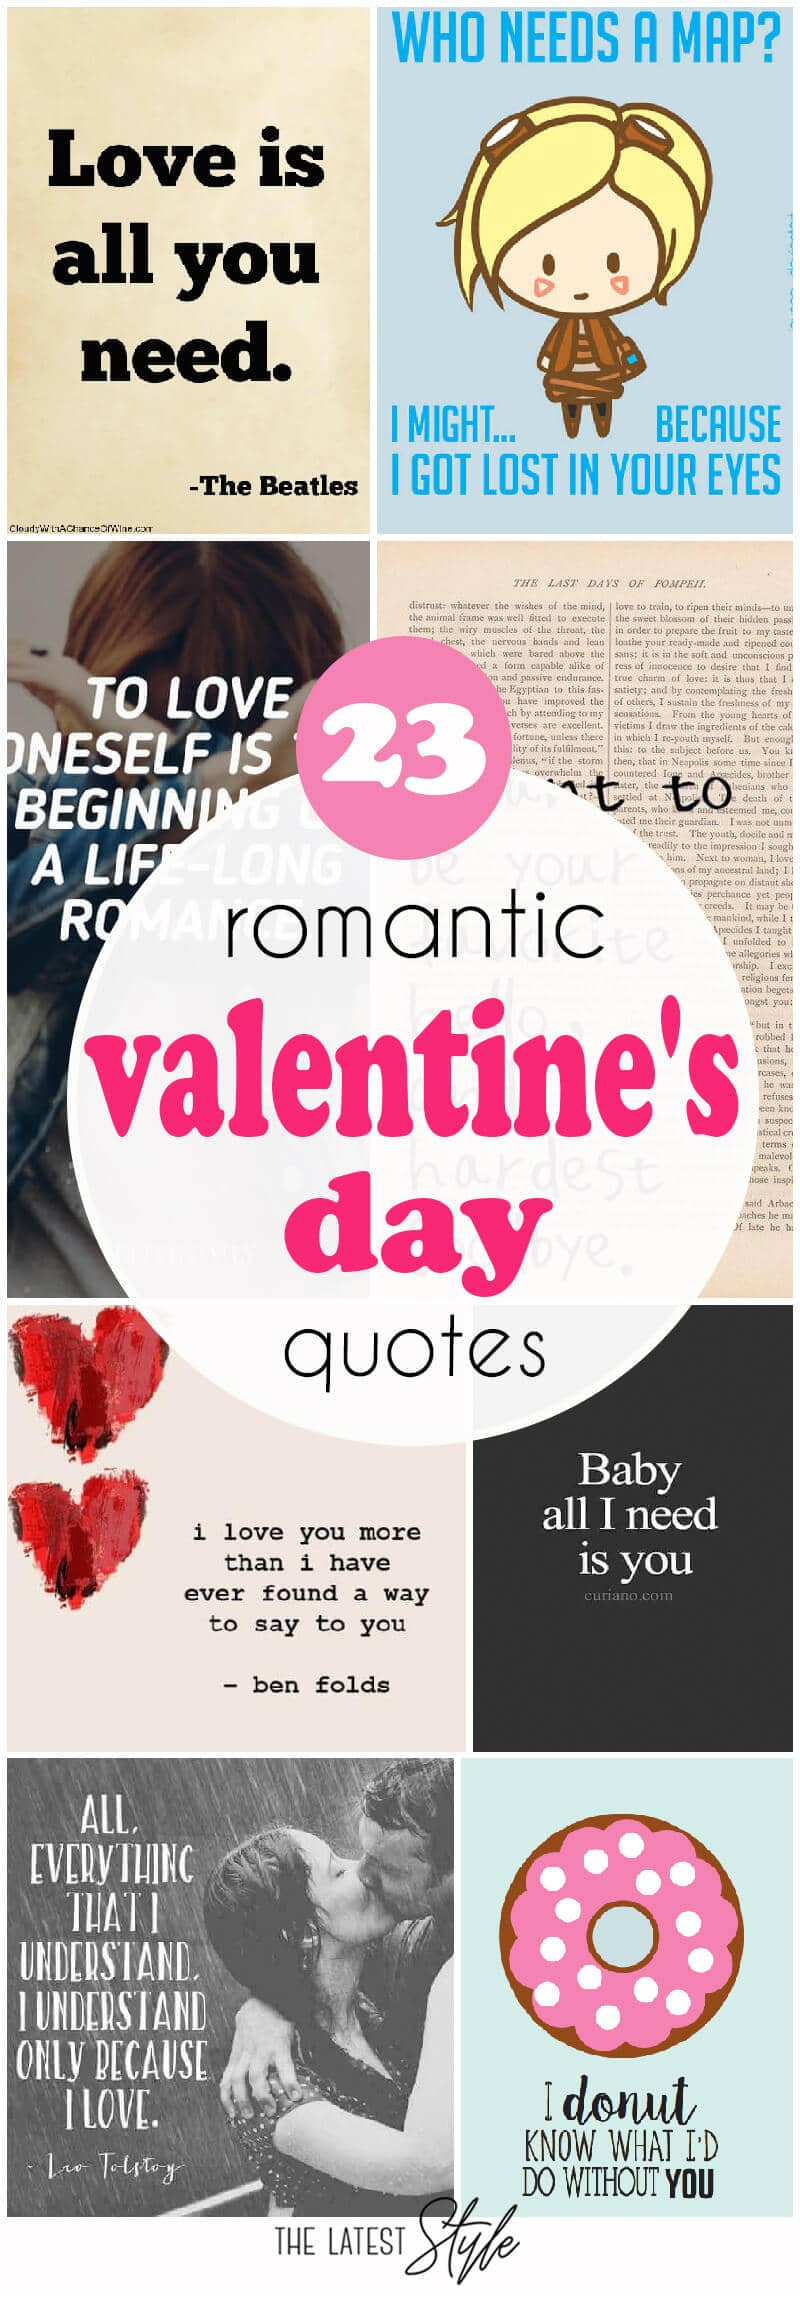 23 romantic valentines day quotes thatll charm and swoon your partner